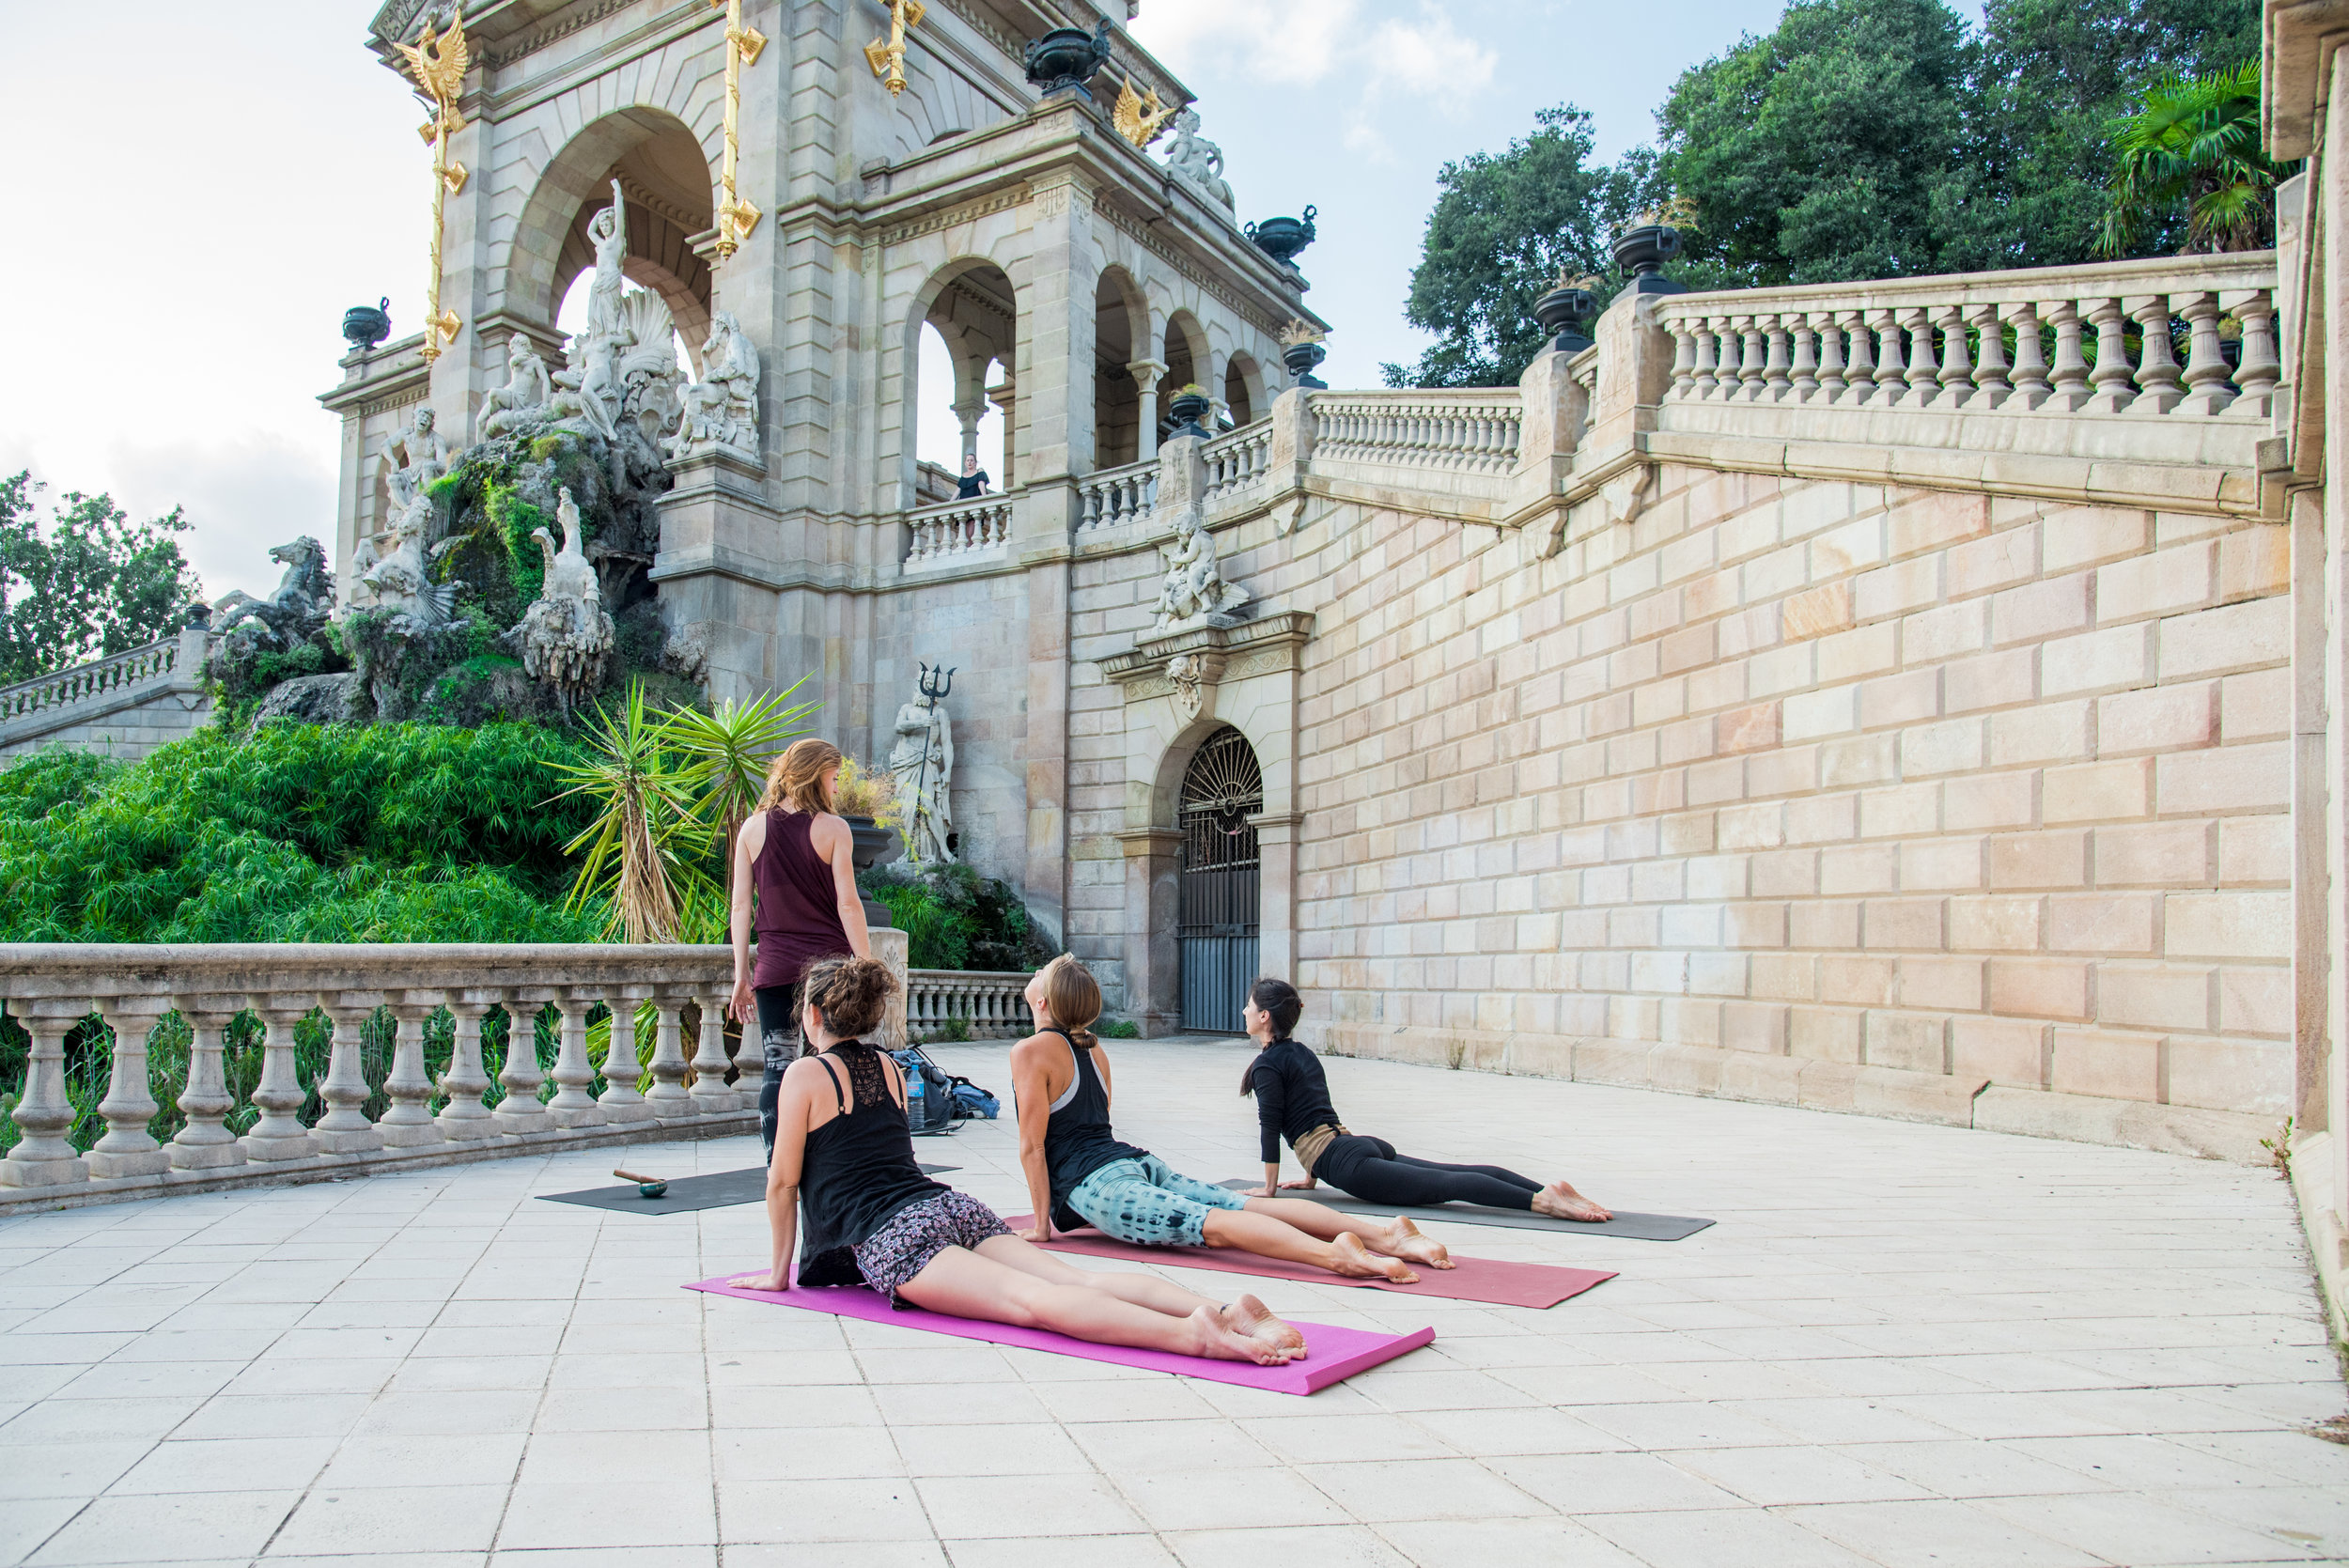 MeetJune  Yoga in Ciutadella Park with Courtney & Kate ( intothewildspaces.com )